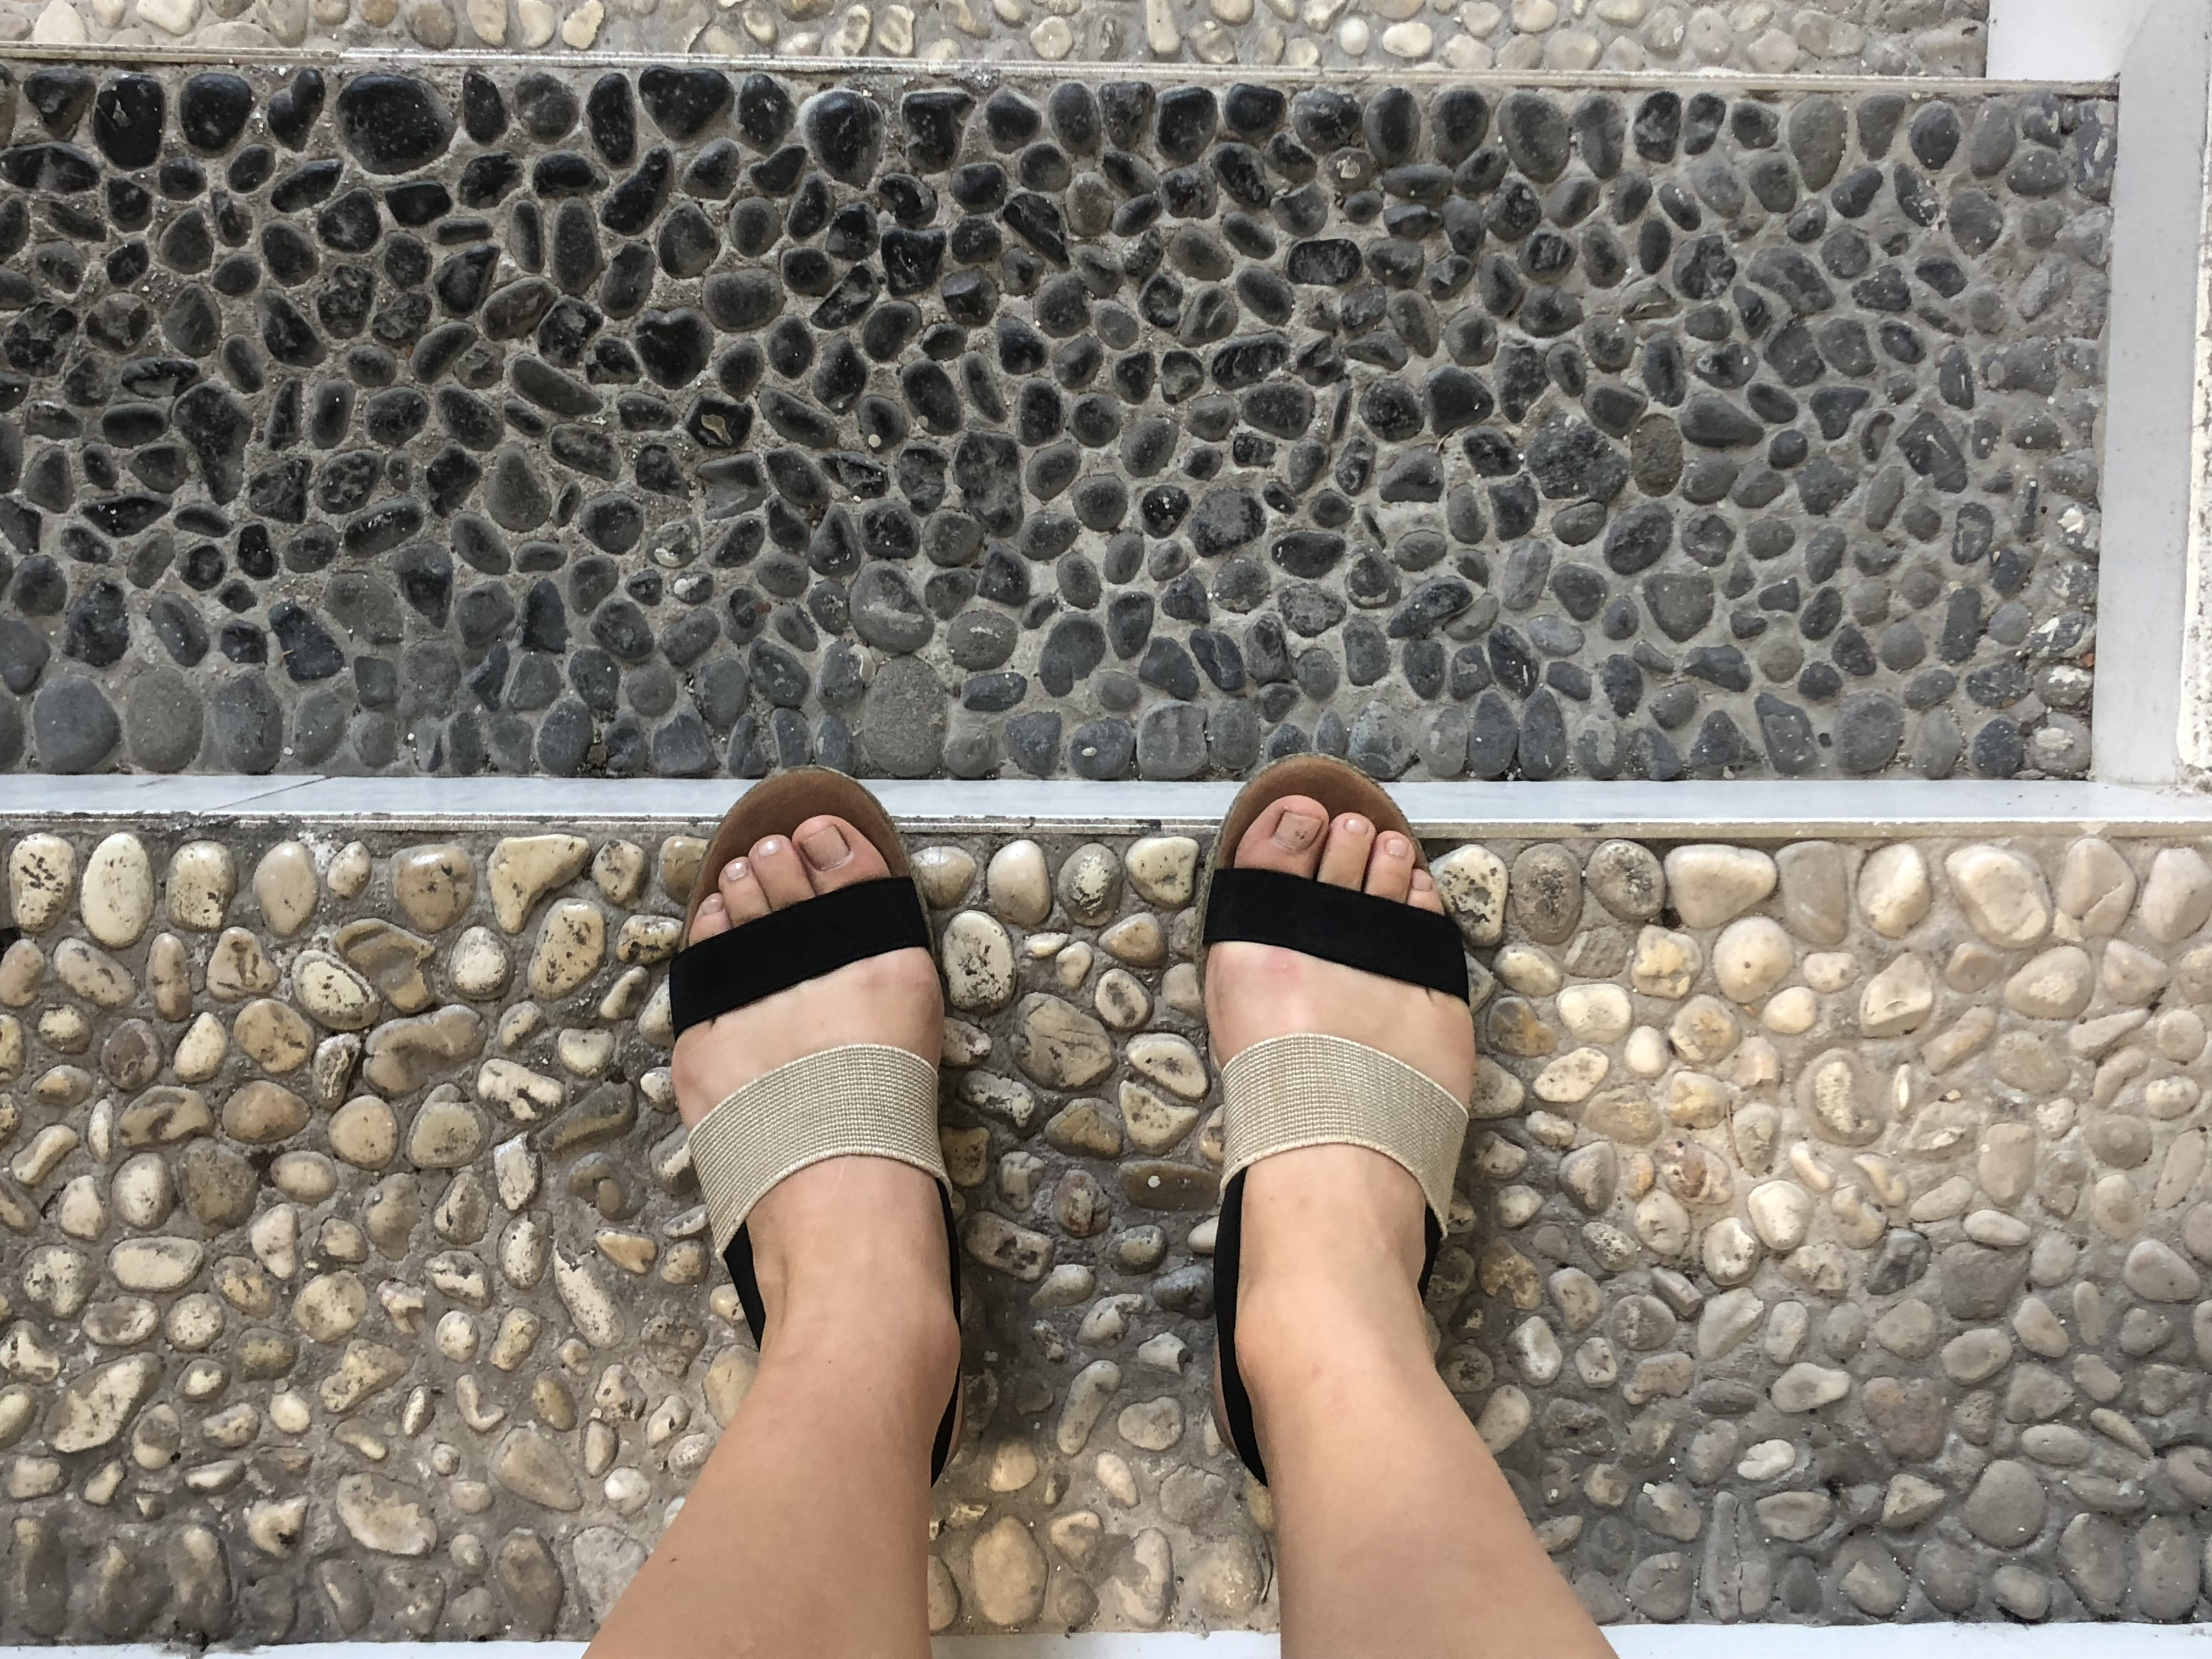 Had to capture my sandals matching the rock